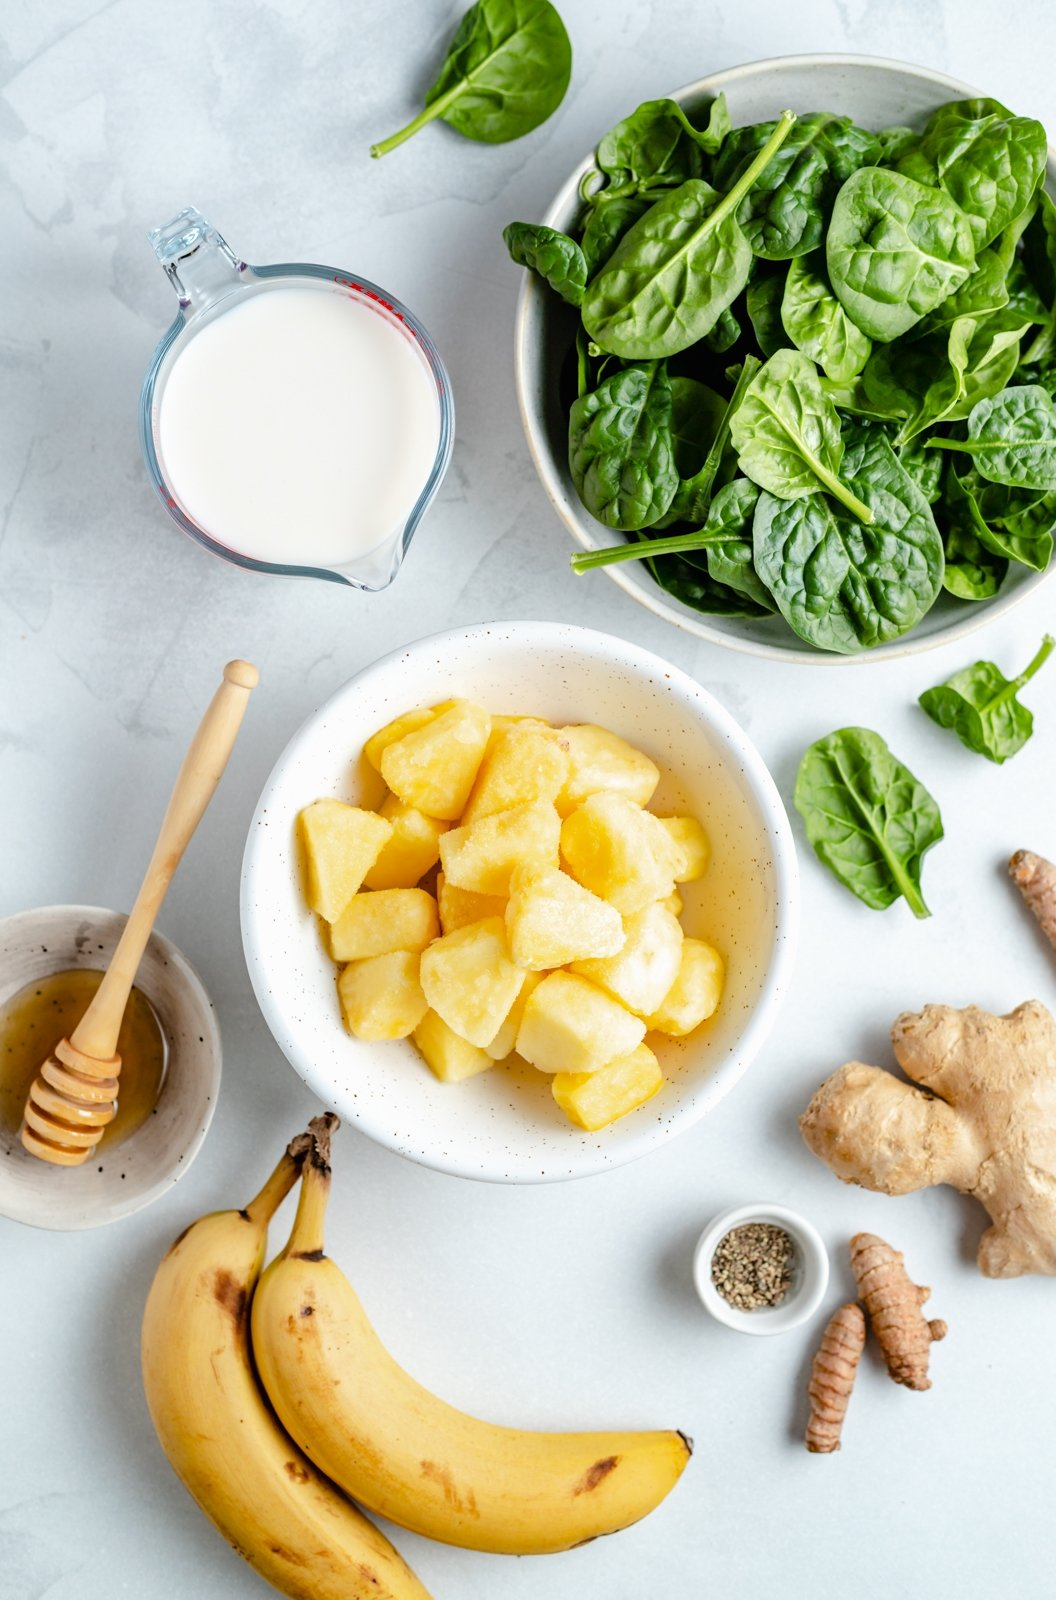 ingredients for an immune boosting wellness smoothie on a board